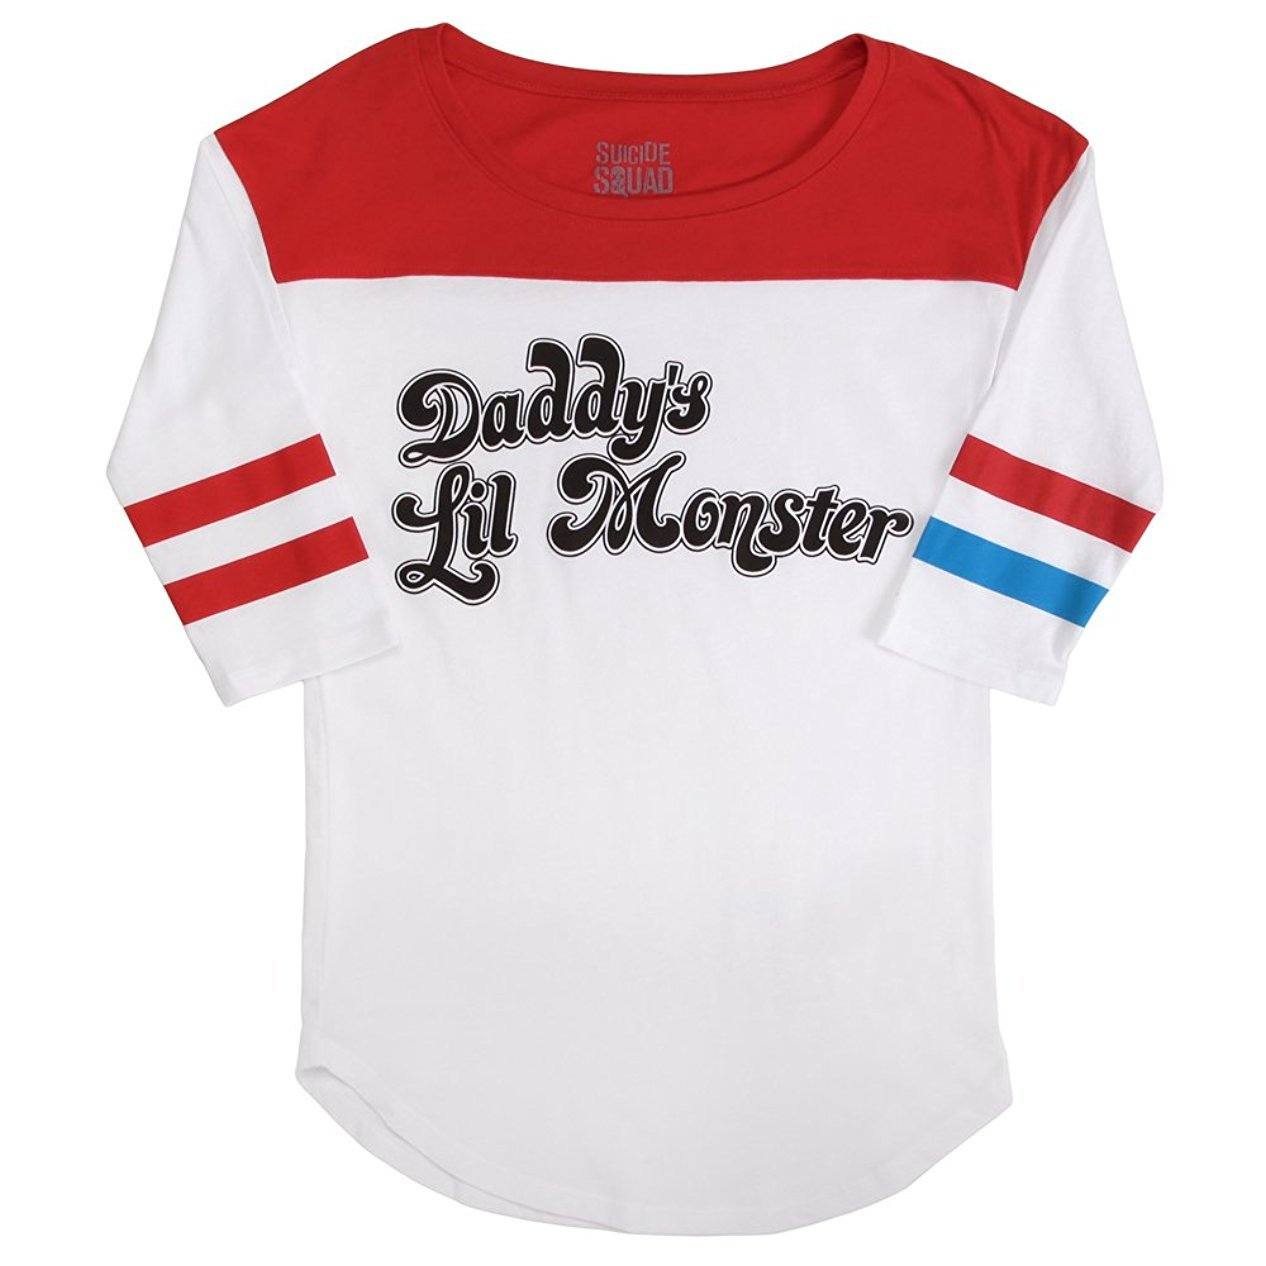 Bioworld Suicide Squad Harley Quinn Daddys Lil Monster Raglan